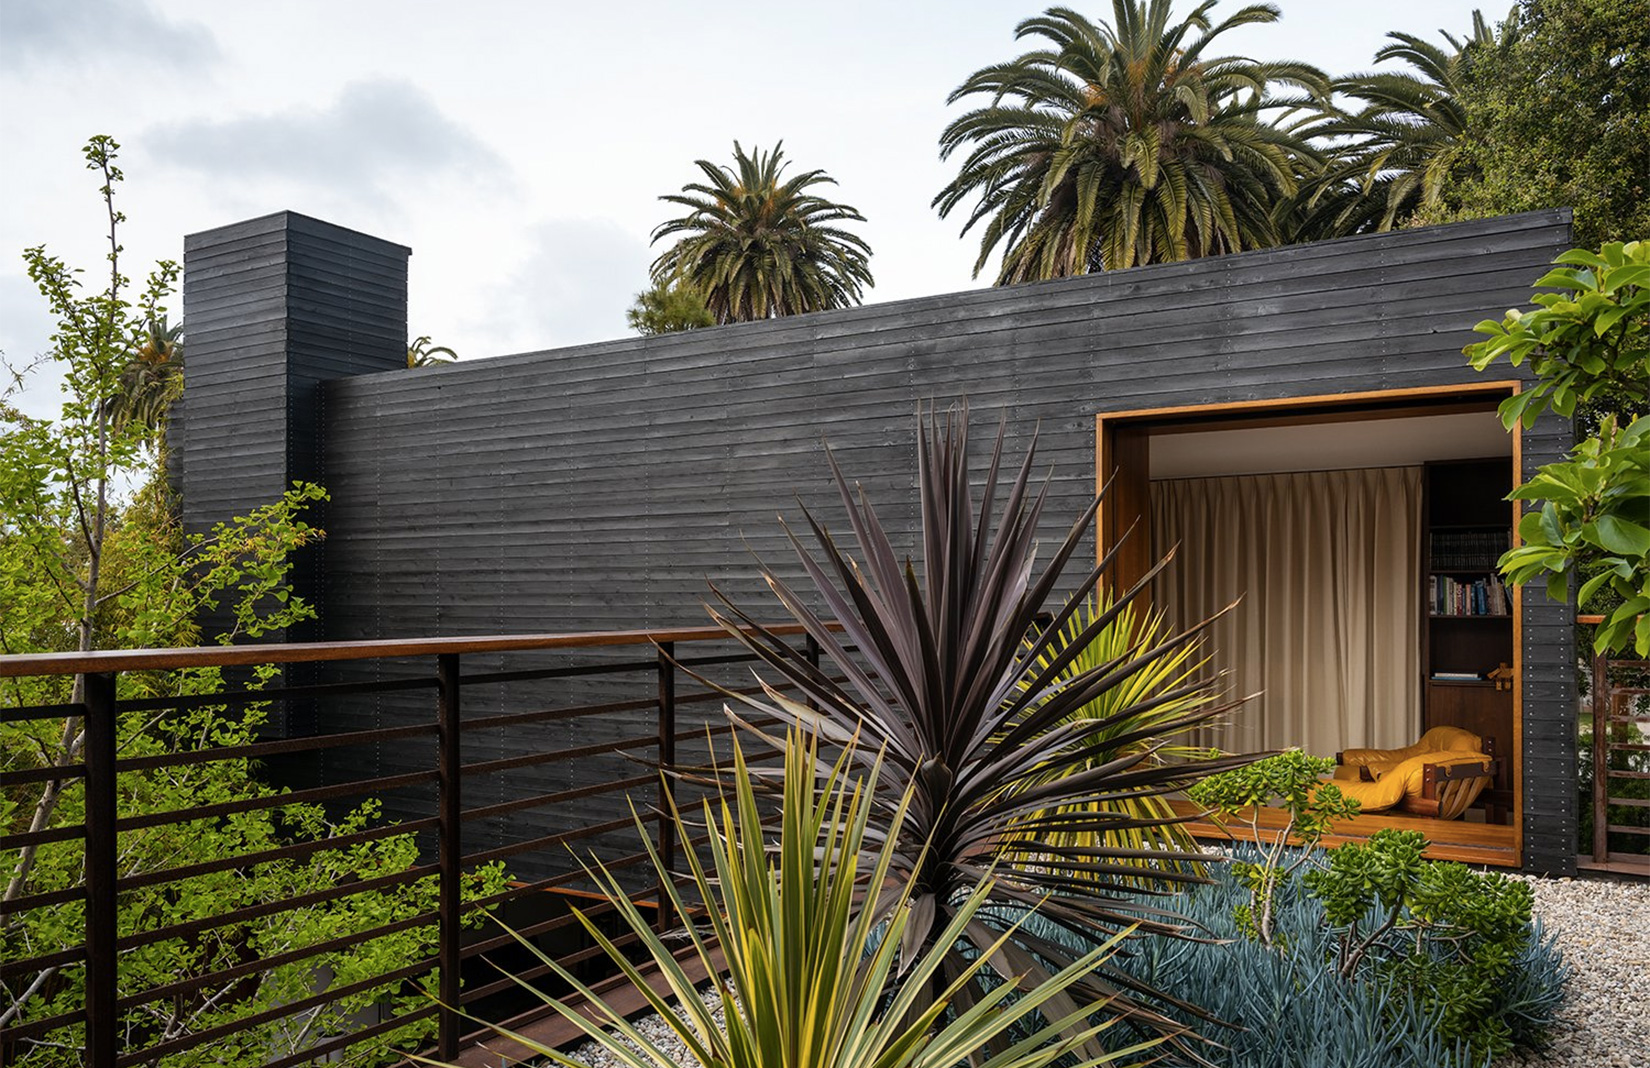 A cedar-clad home surrounded by gardens in Los Angeles, US